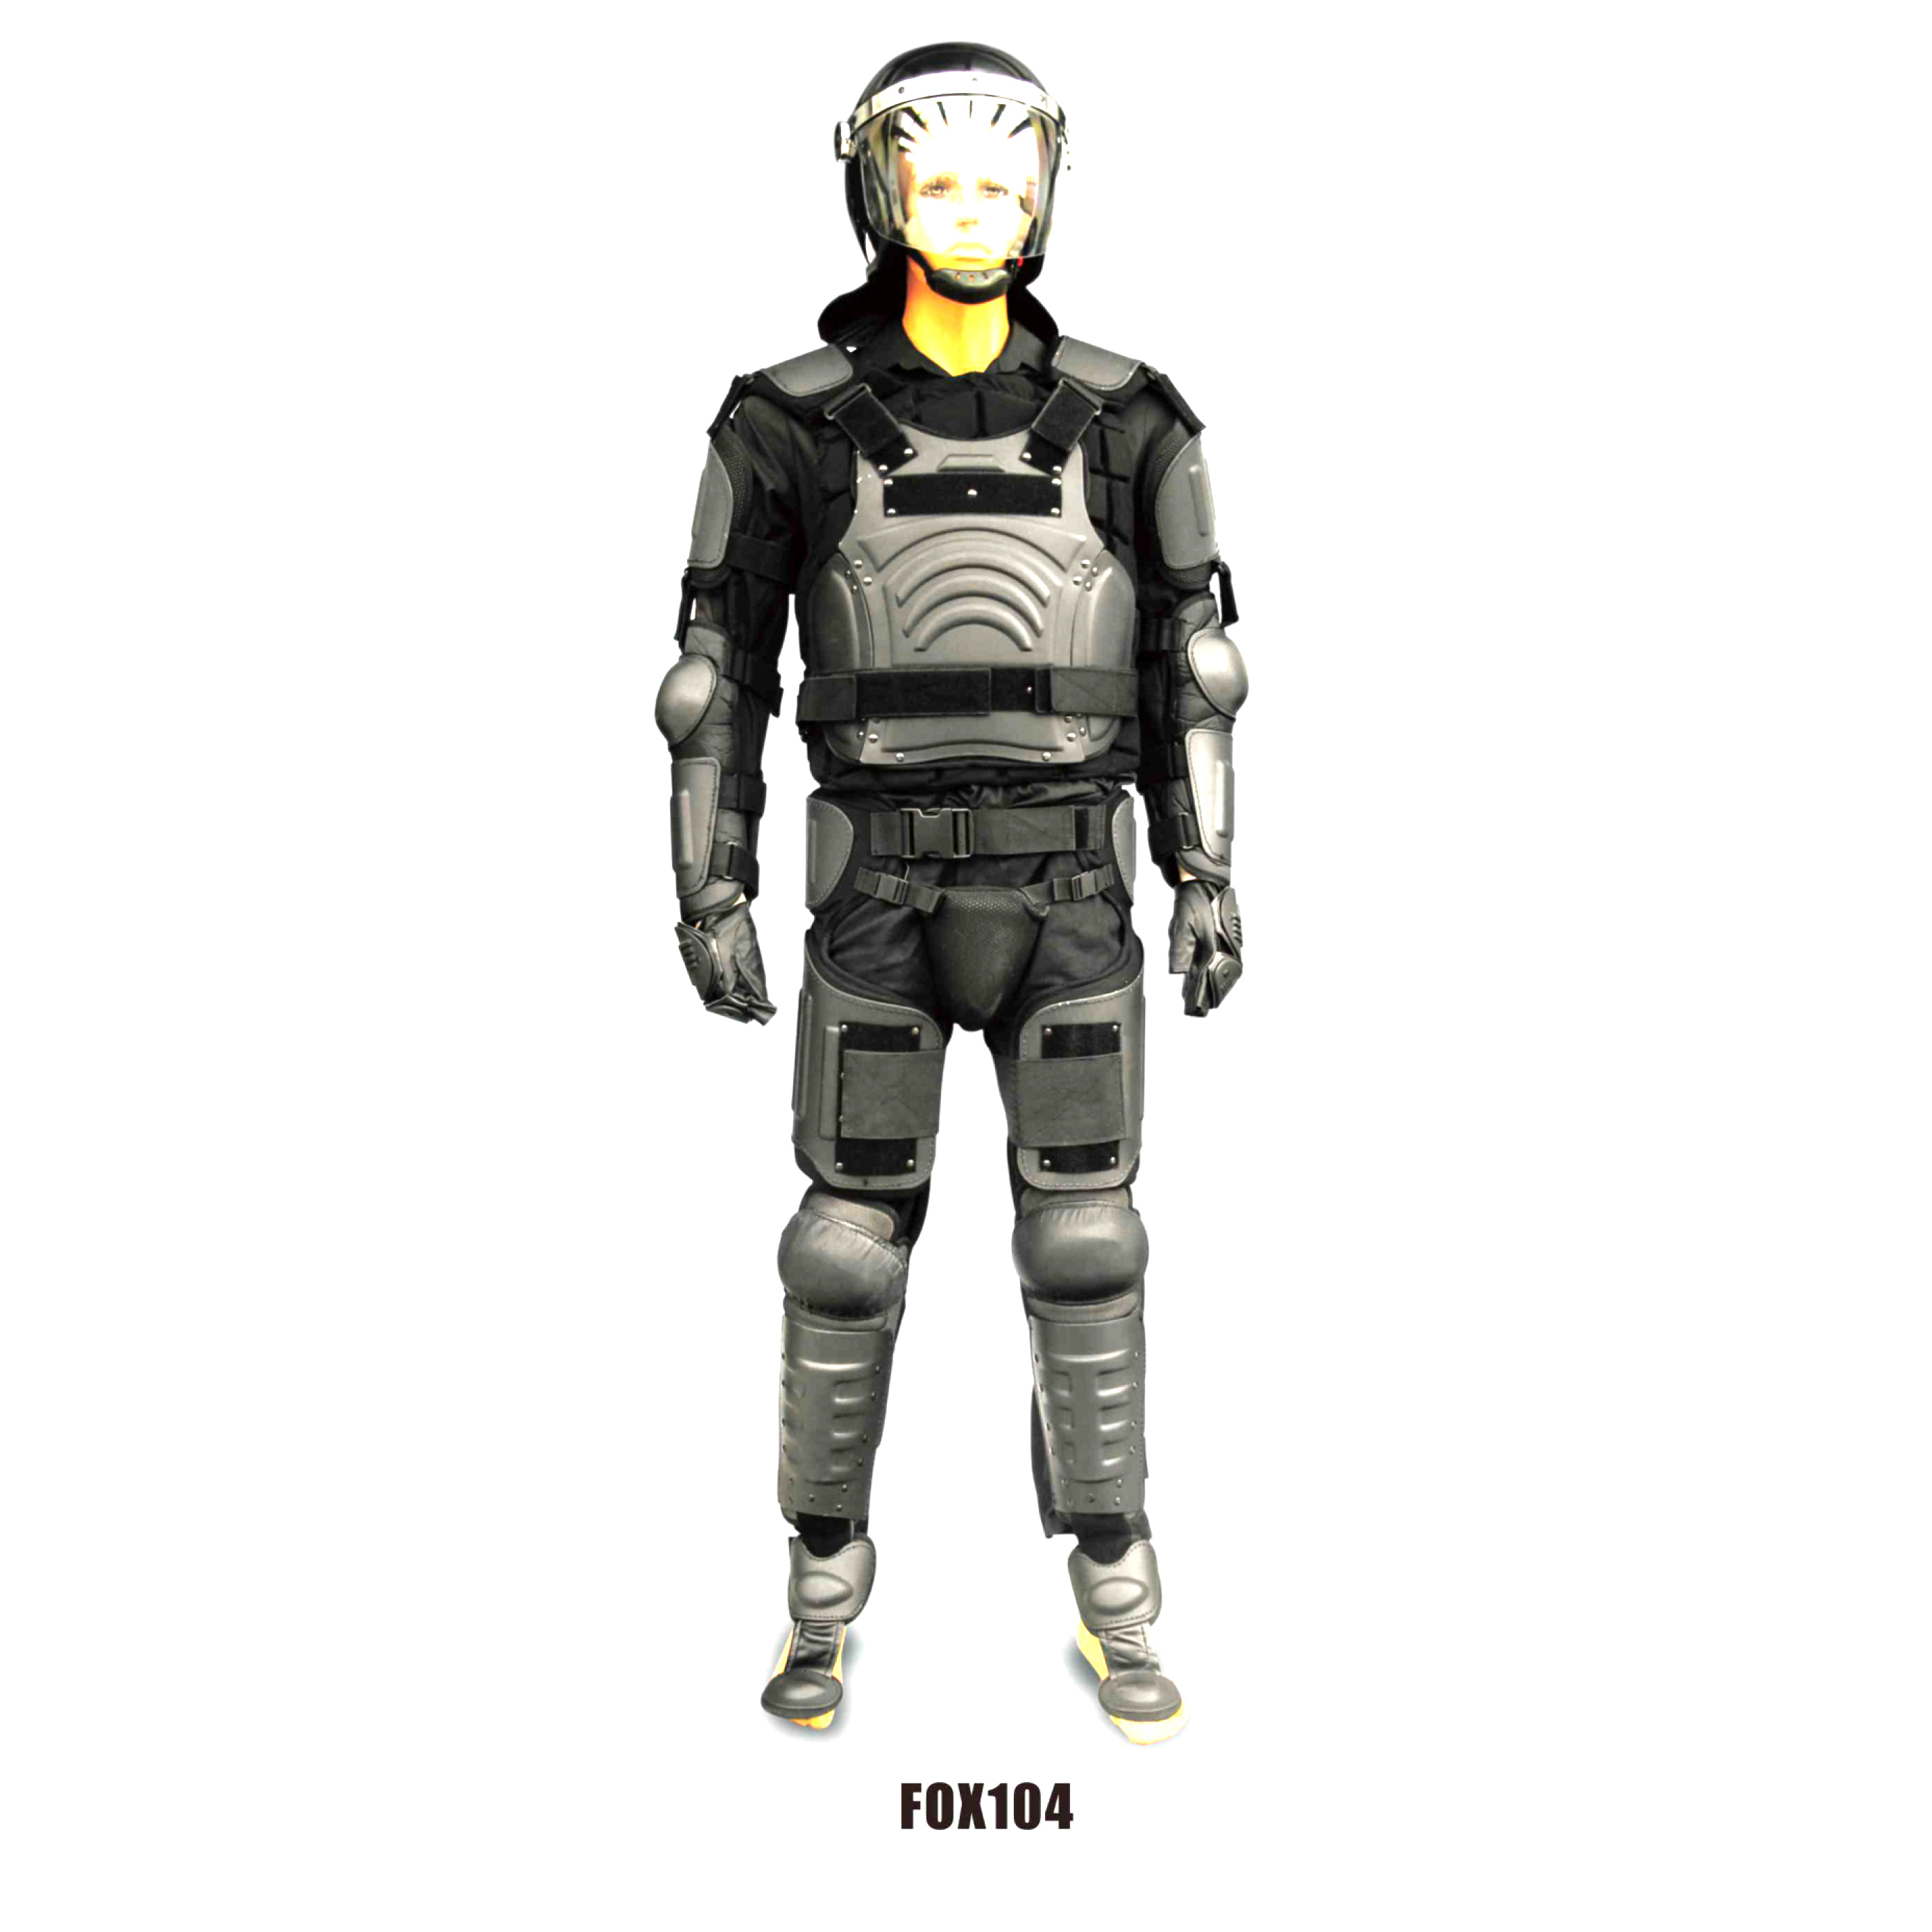 Tactical Anti riot armor for full body protection Body Vest with Neck Groin Protector